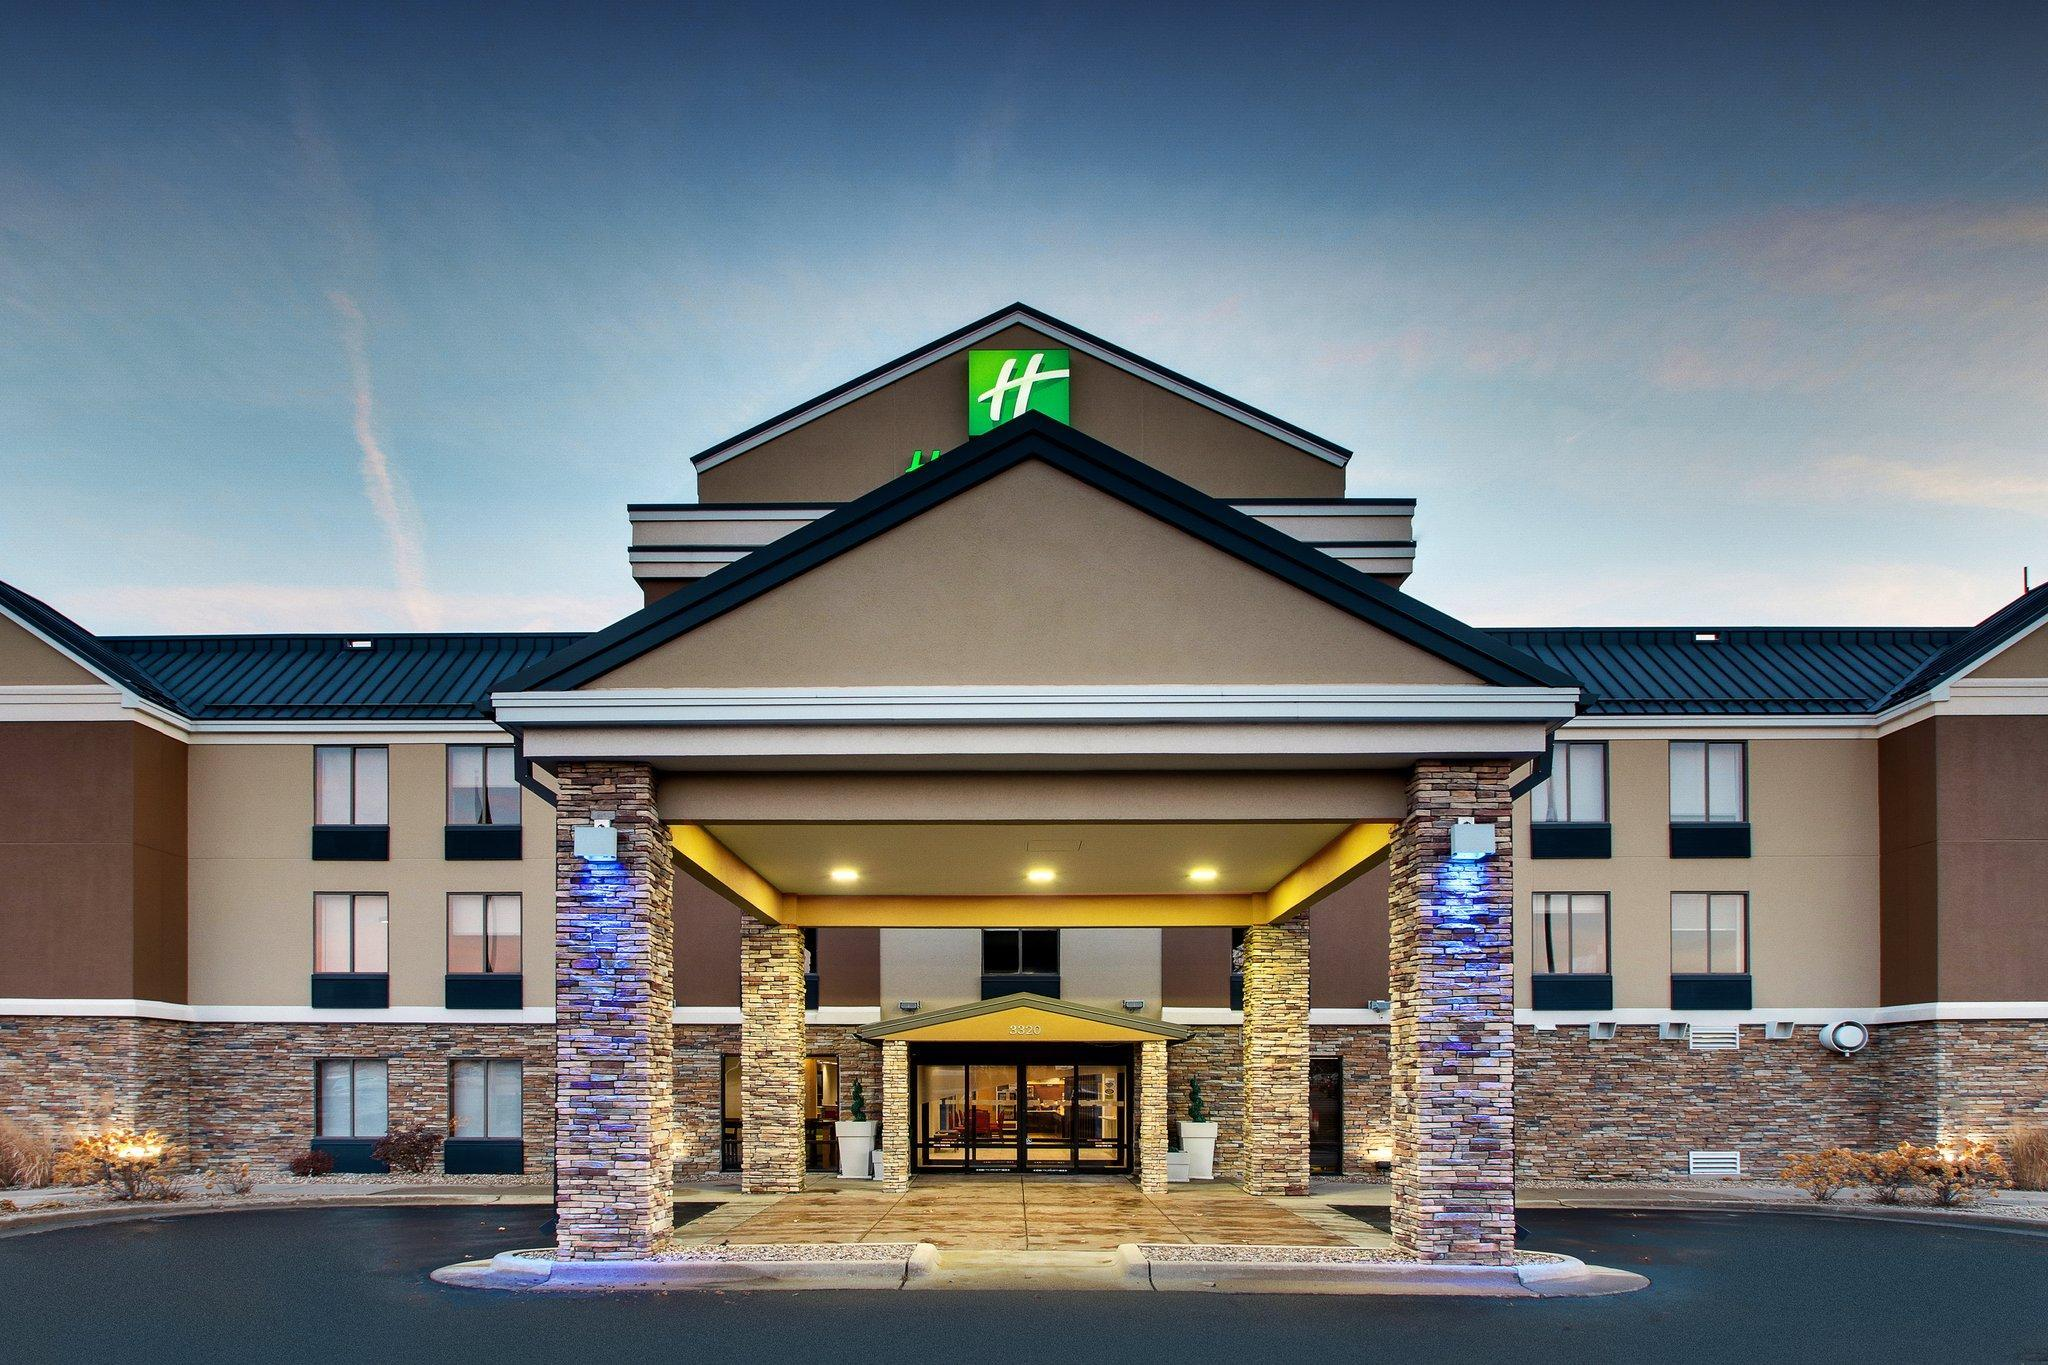 Holiday Inn Express Hotel And Suites Cedar Rapids I 380 At 33rd Avenue